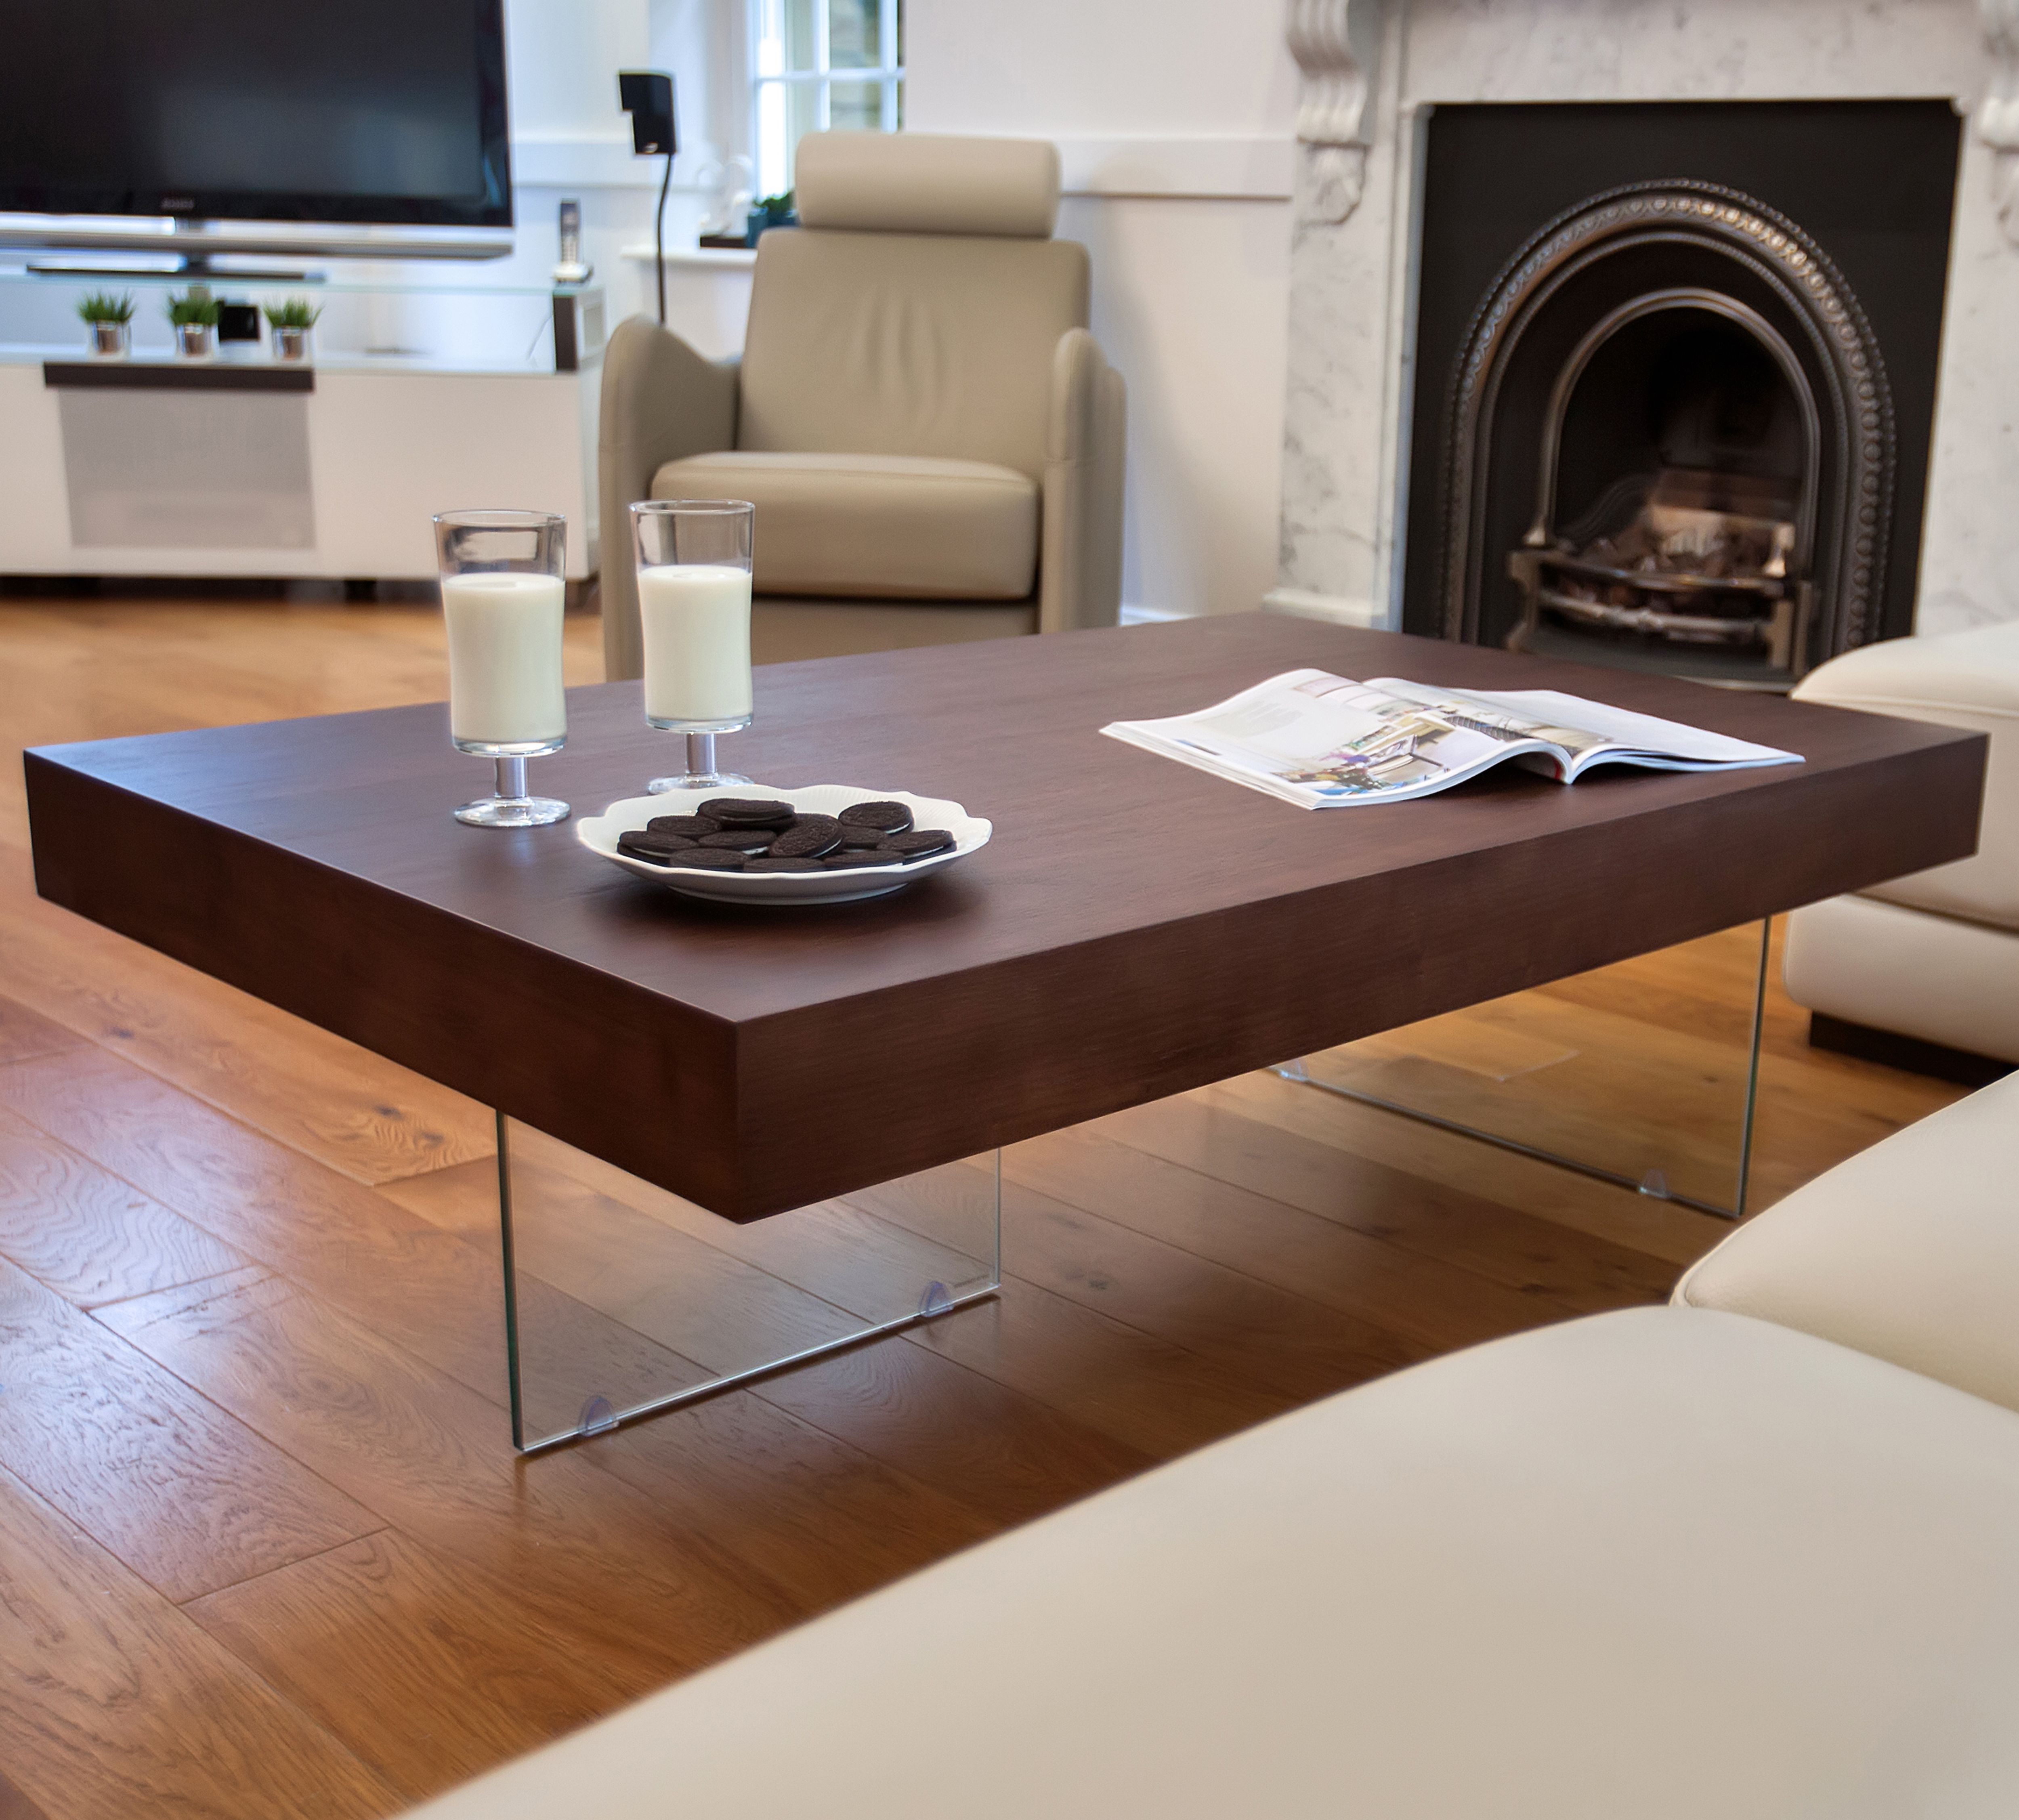 kick back and relax next to the aria large espresso dark wood coffee table perfect for keeping those movie snacks geraumiges wohnzimmer couchtische couchtisch